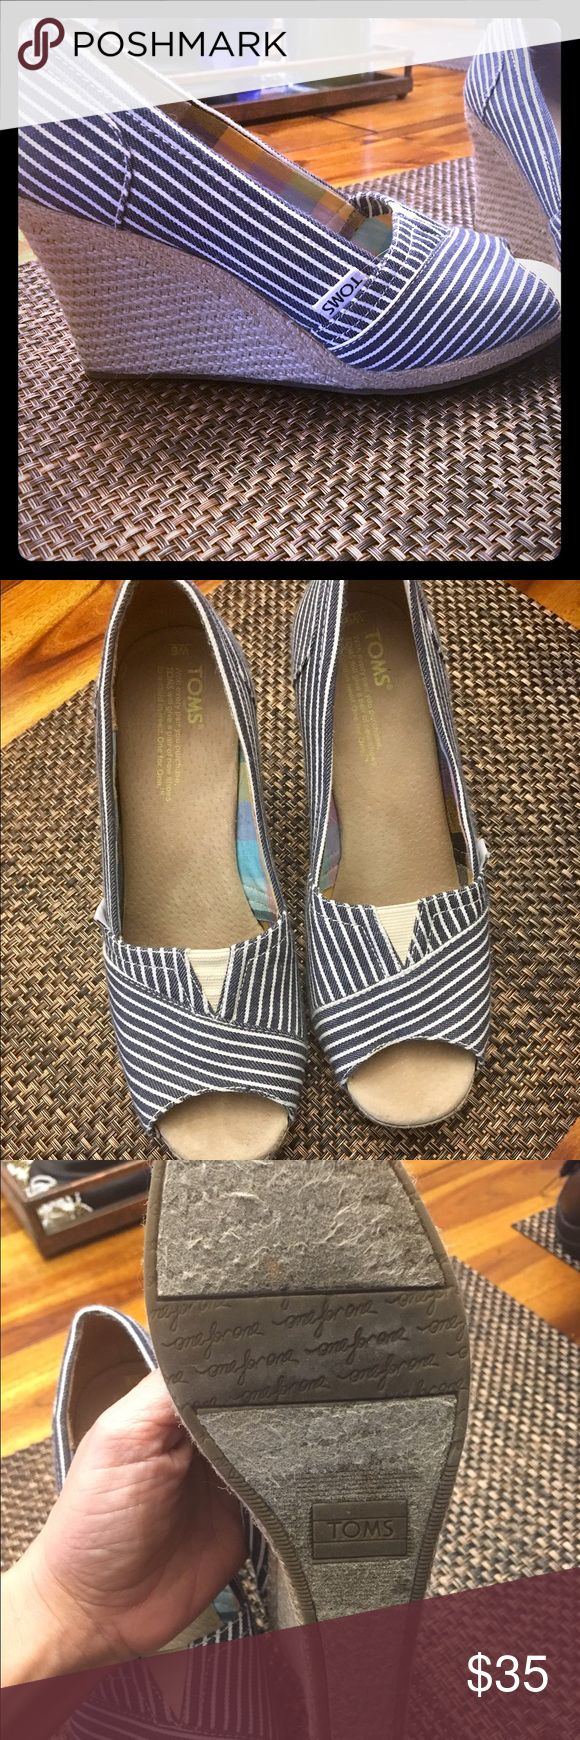 TOMS Peep Toe Wedges Cute TOMS peep toe wedges size 6 TOMS Shoes Wedges